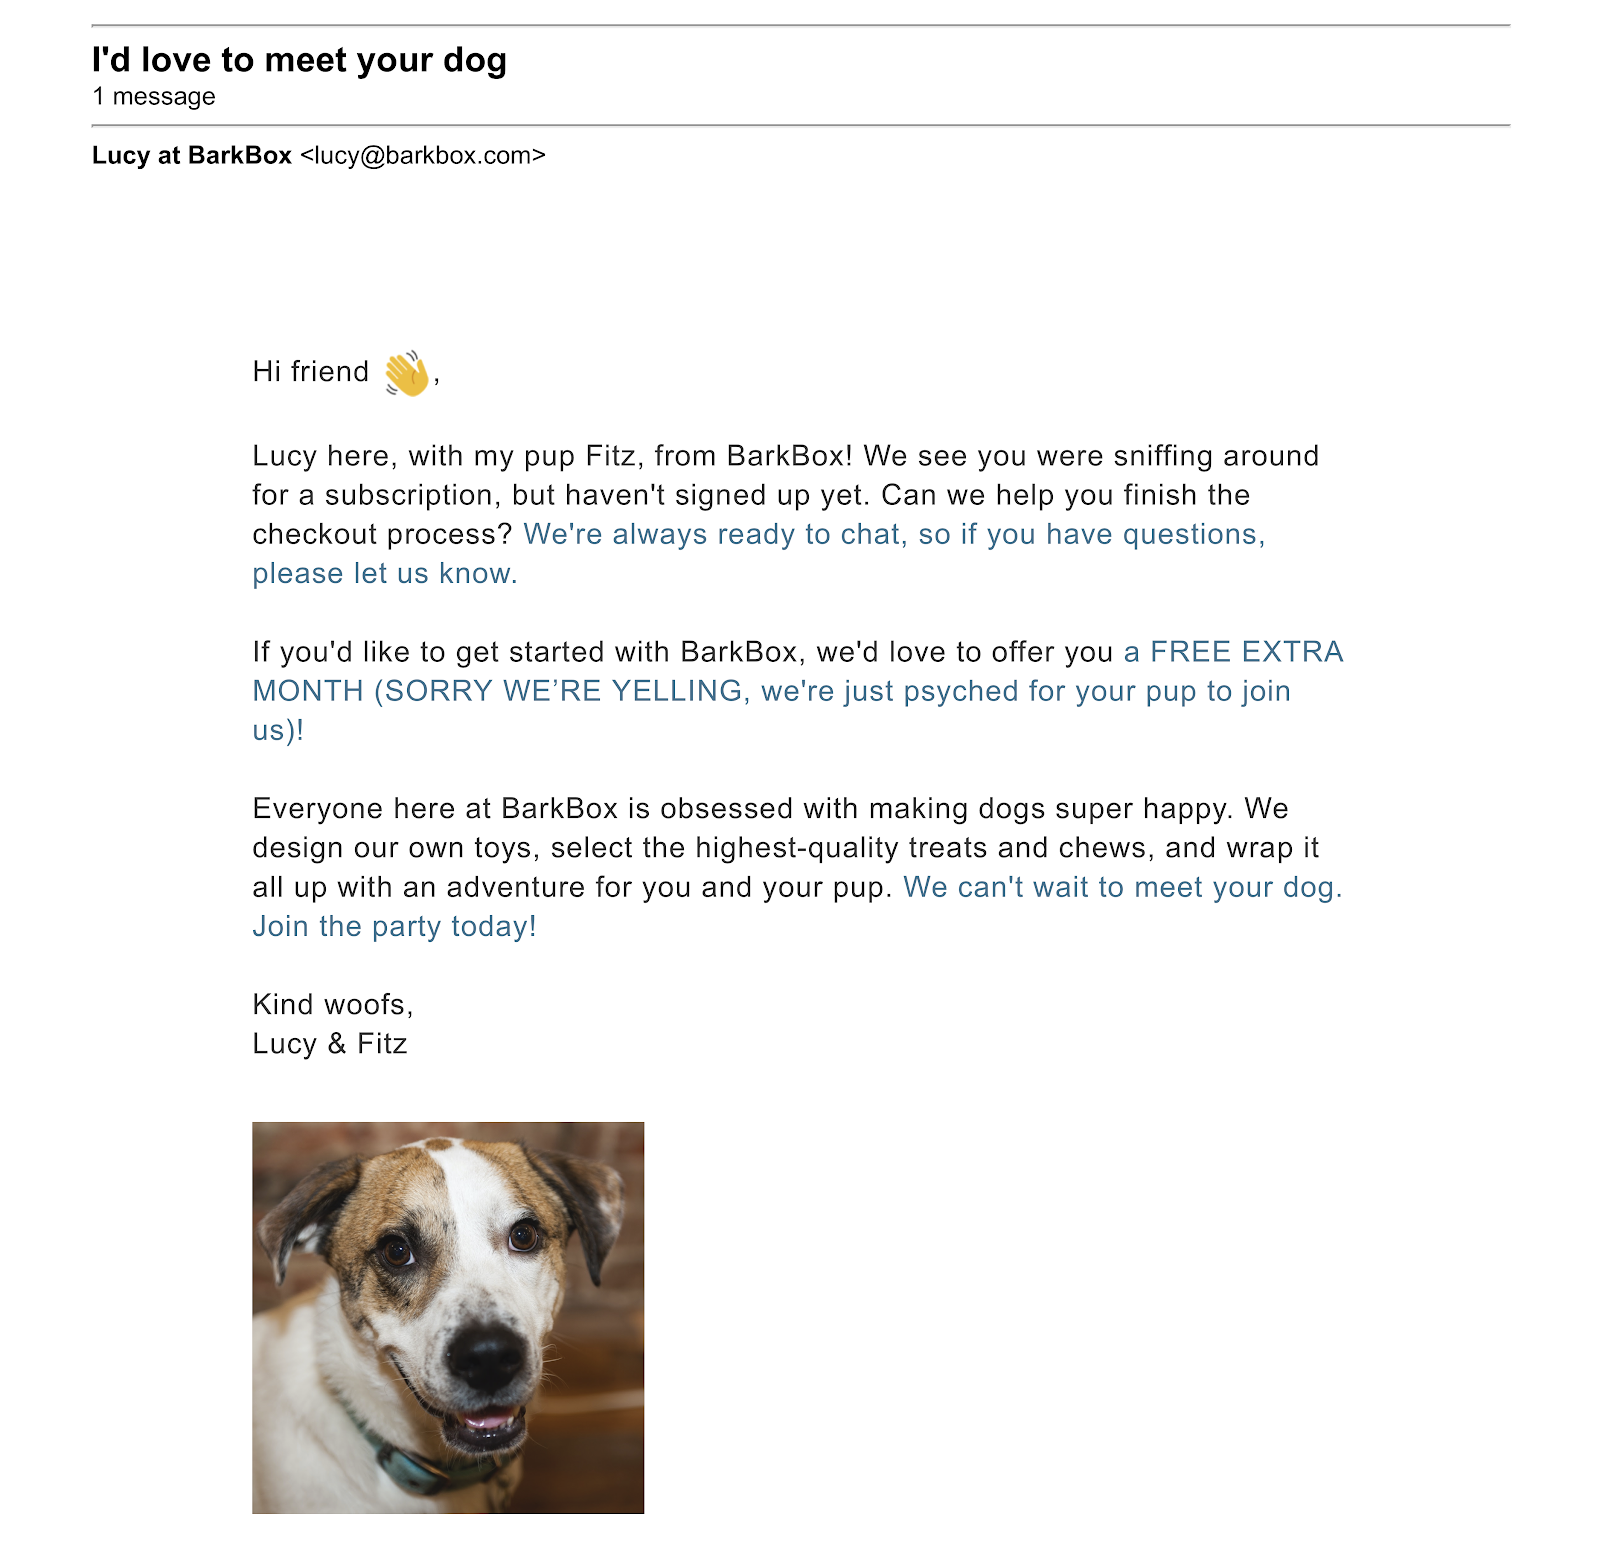 BarkBox Abandoned Email - Personalization